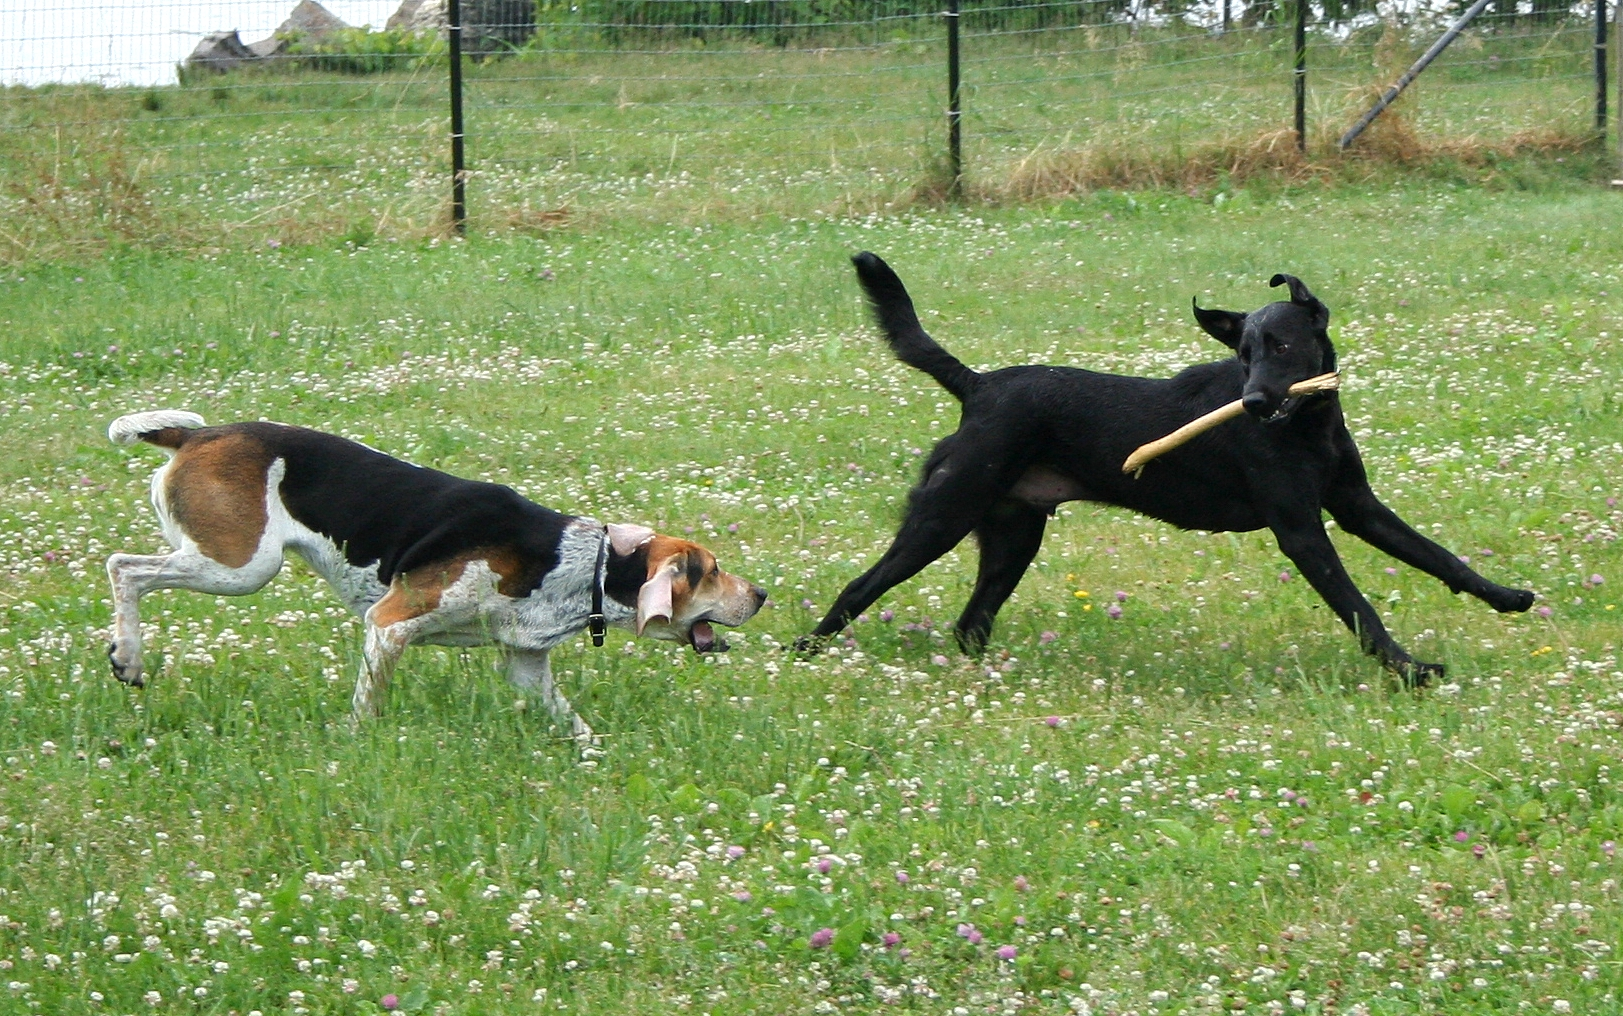 American_Foxhound_and_Labrador_Retriever_playing